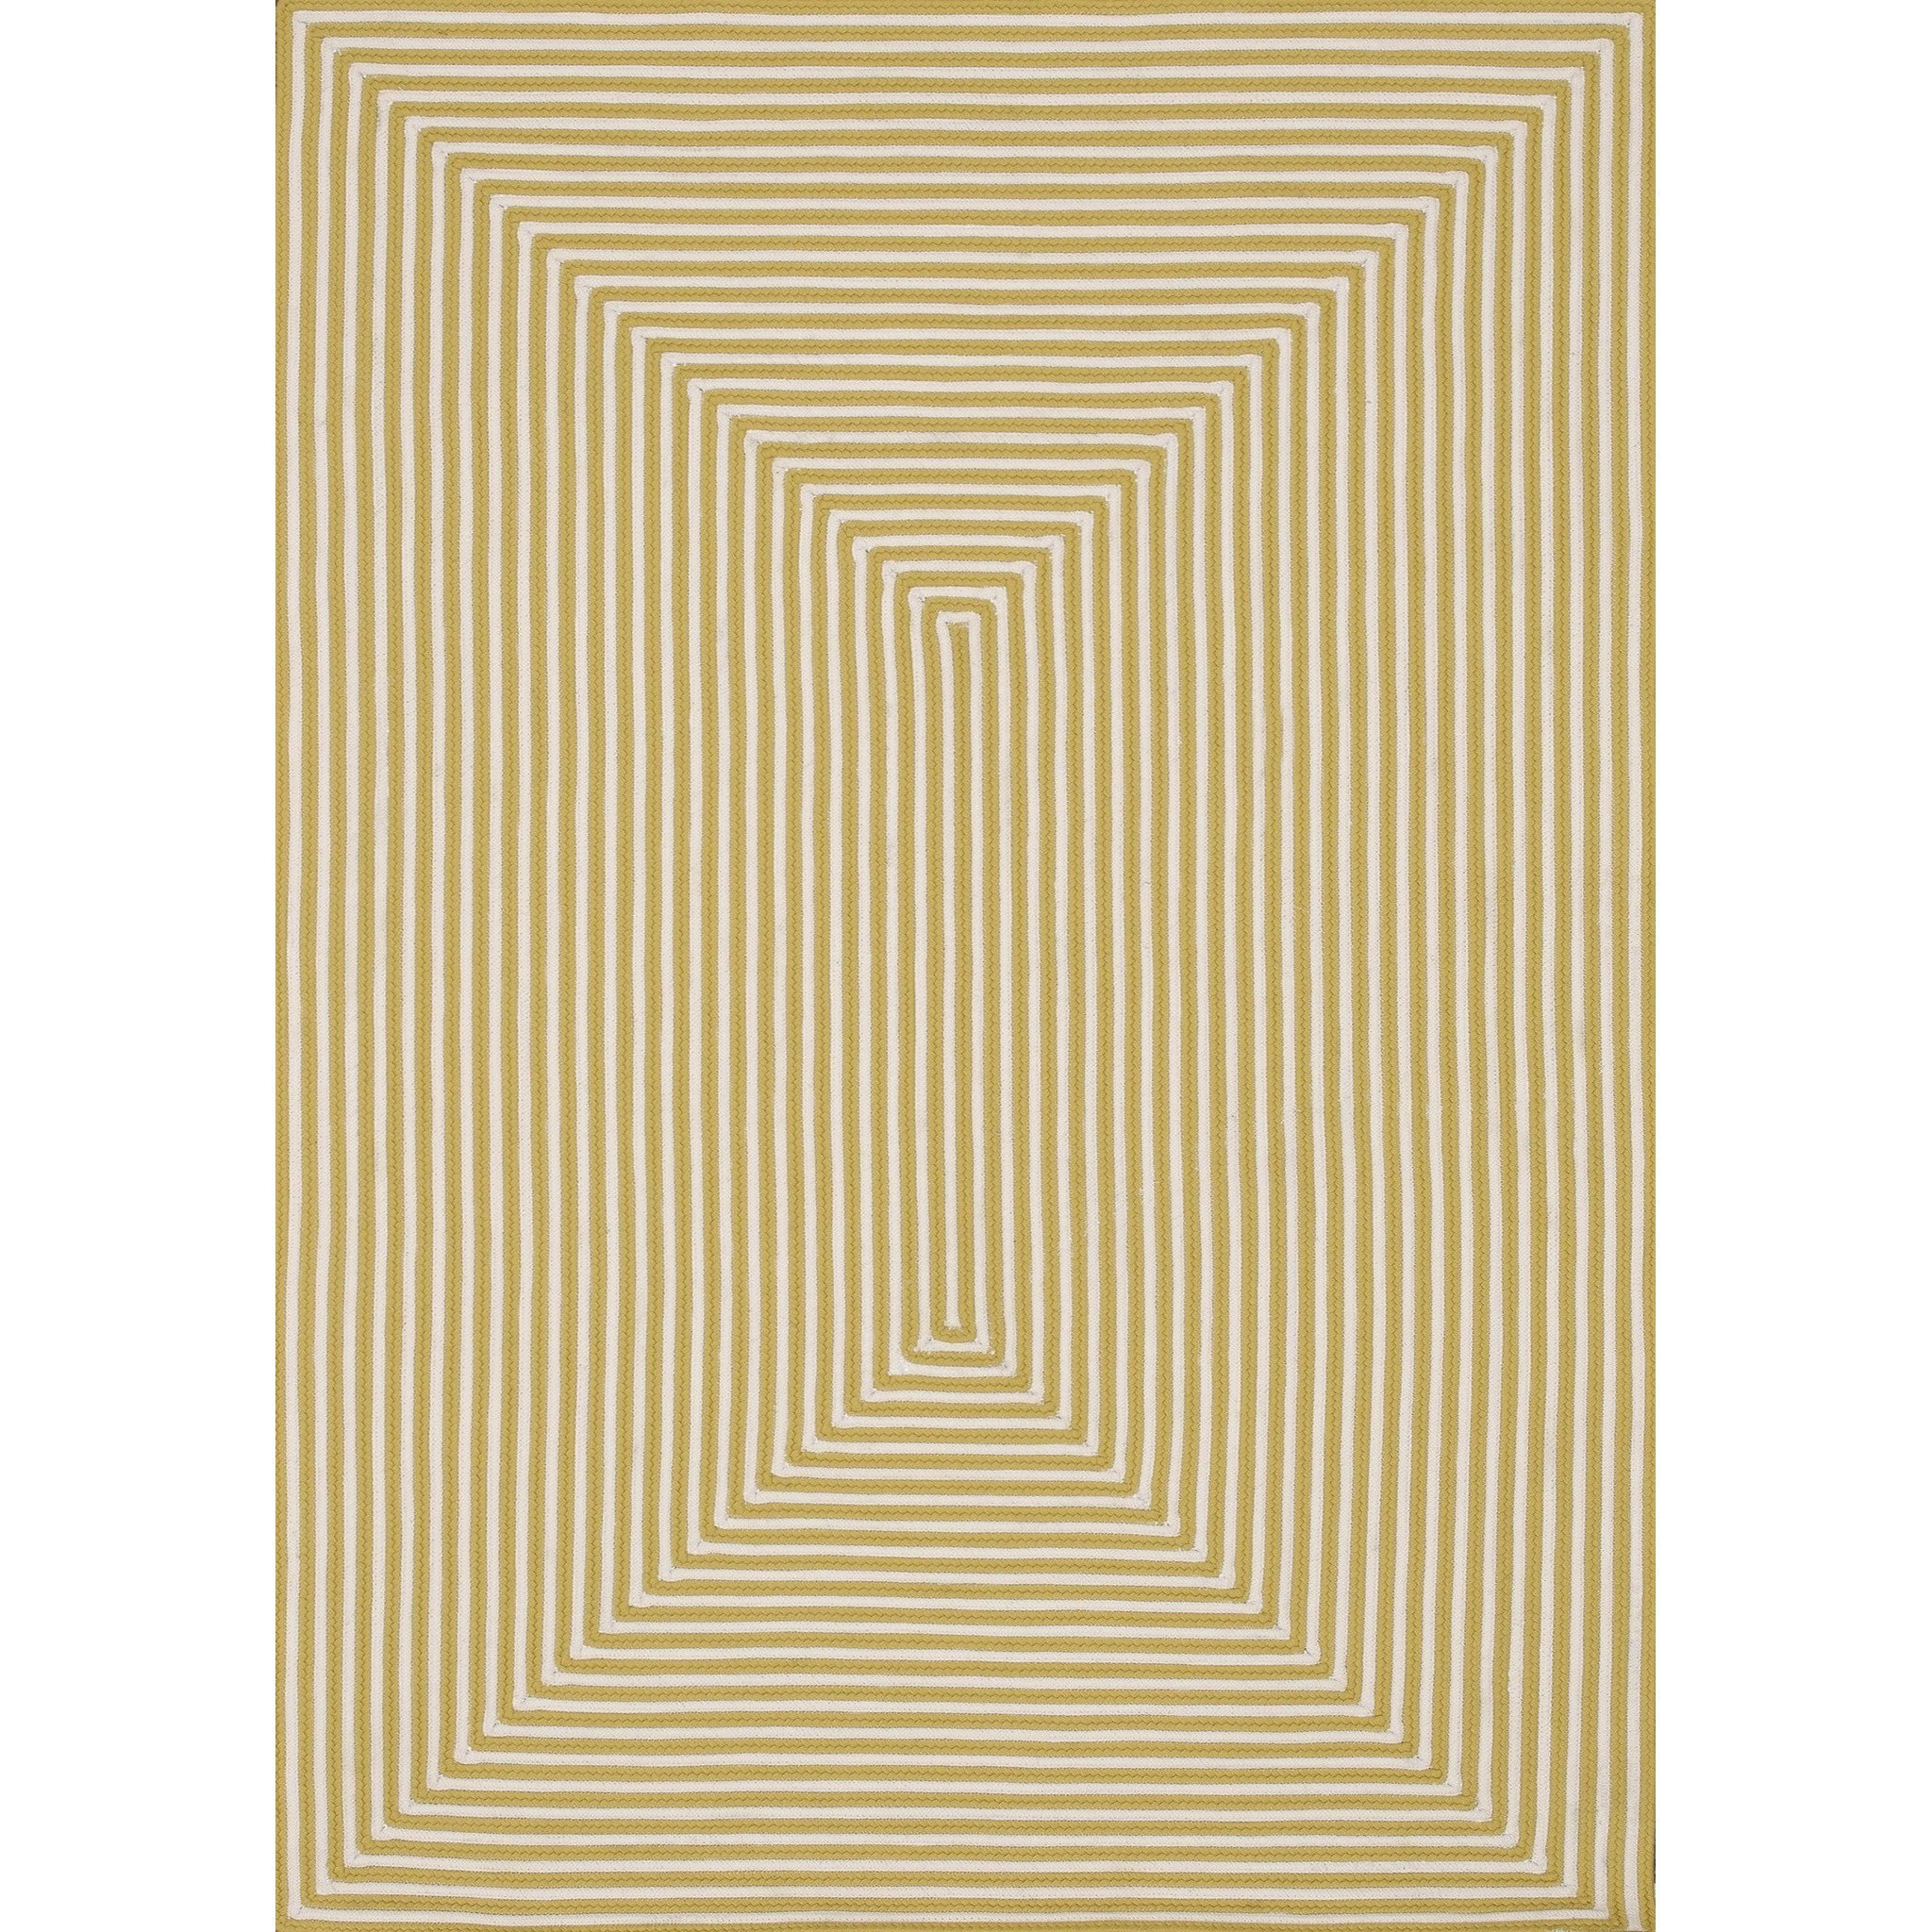 "In/Out 7'-6"" x 9'-6"" Area Rug by Loloi Rugs at Sprintz Furniture"